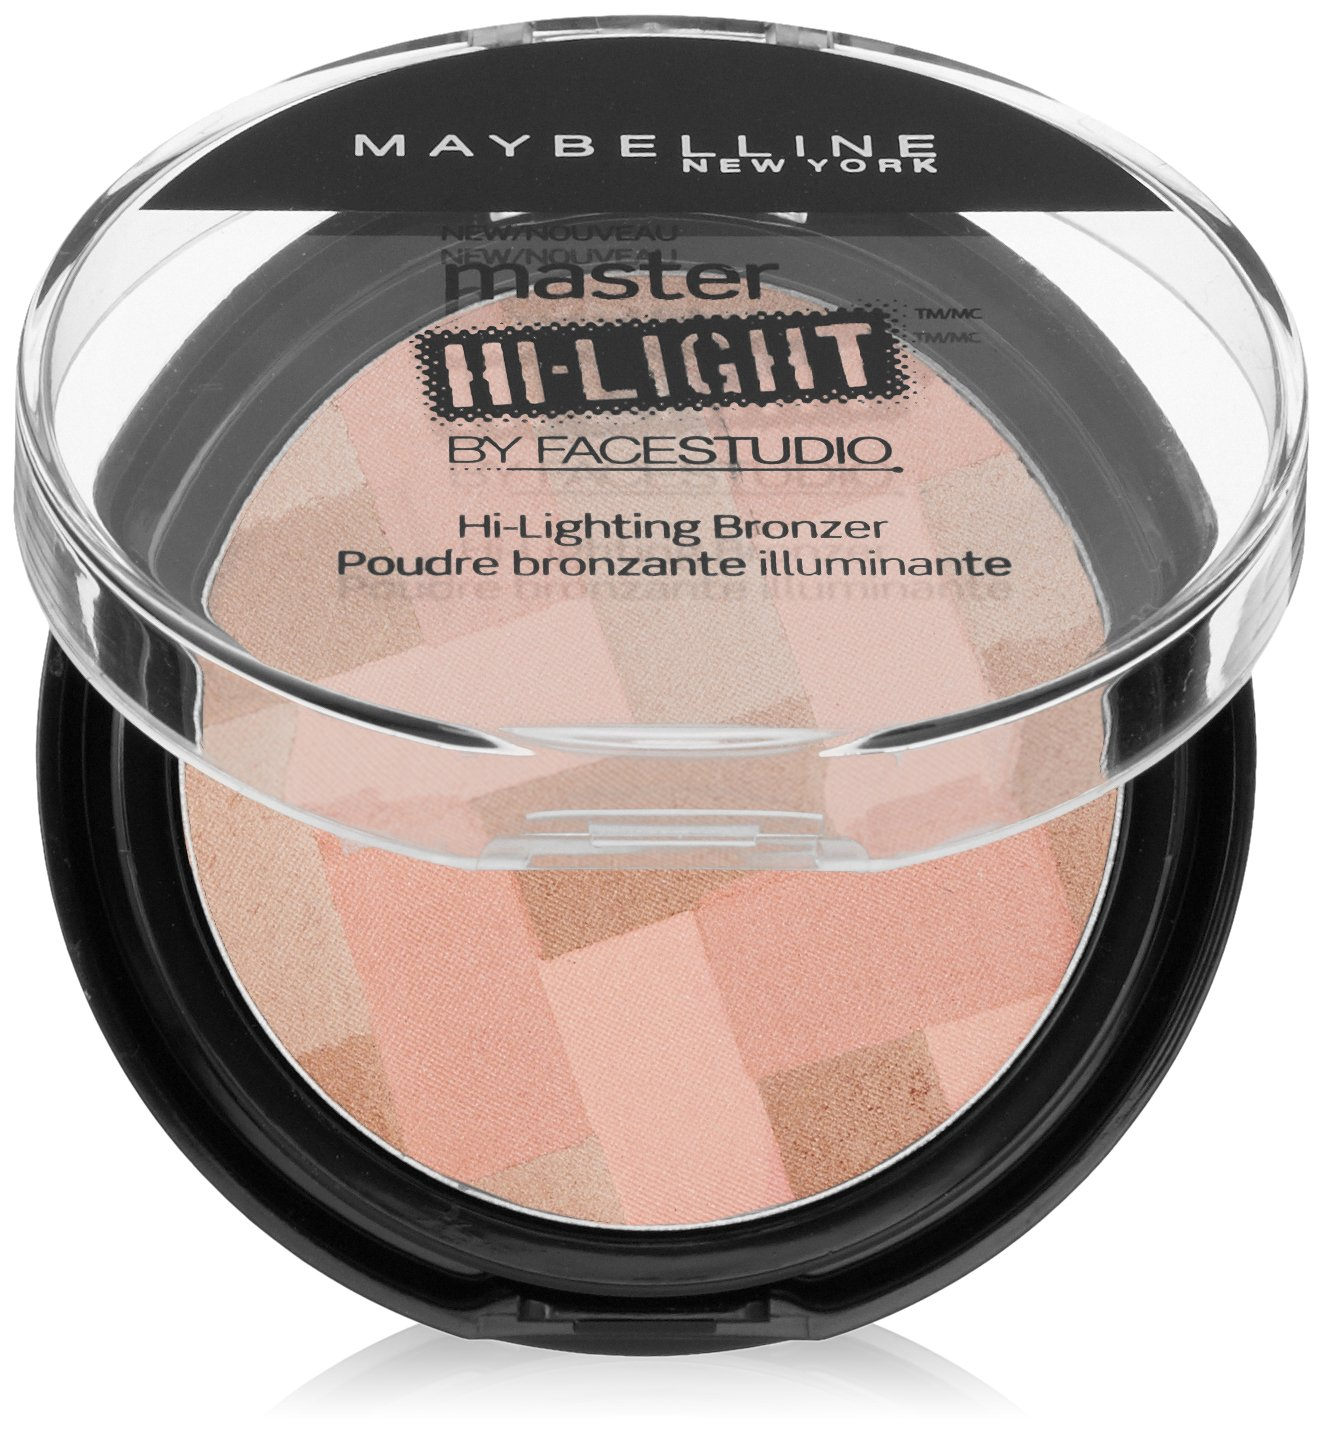 Maybelline New York Face Studio Master Hi-Light Blush, Nude, 0.31 Ounce